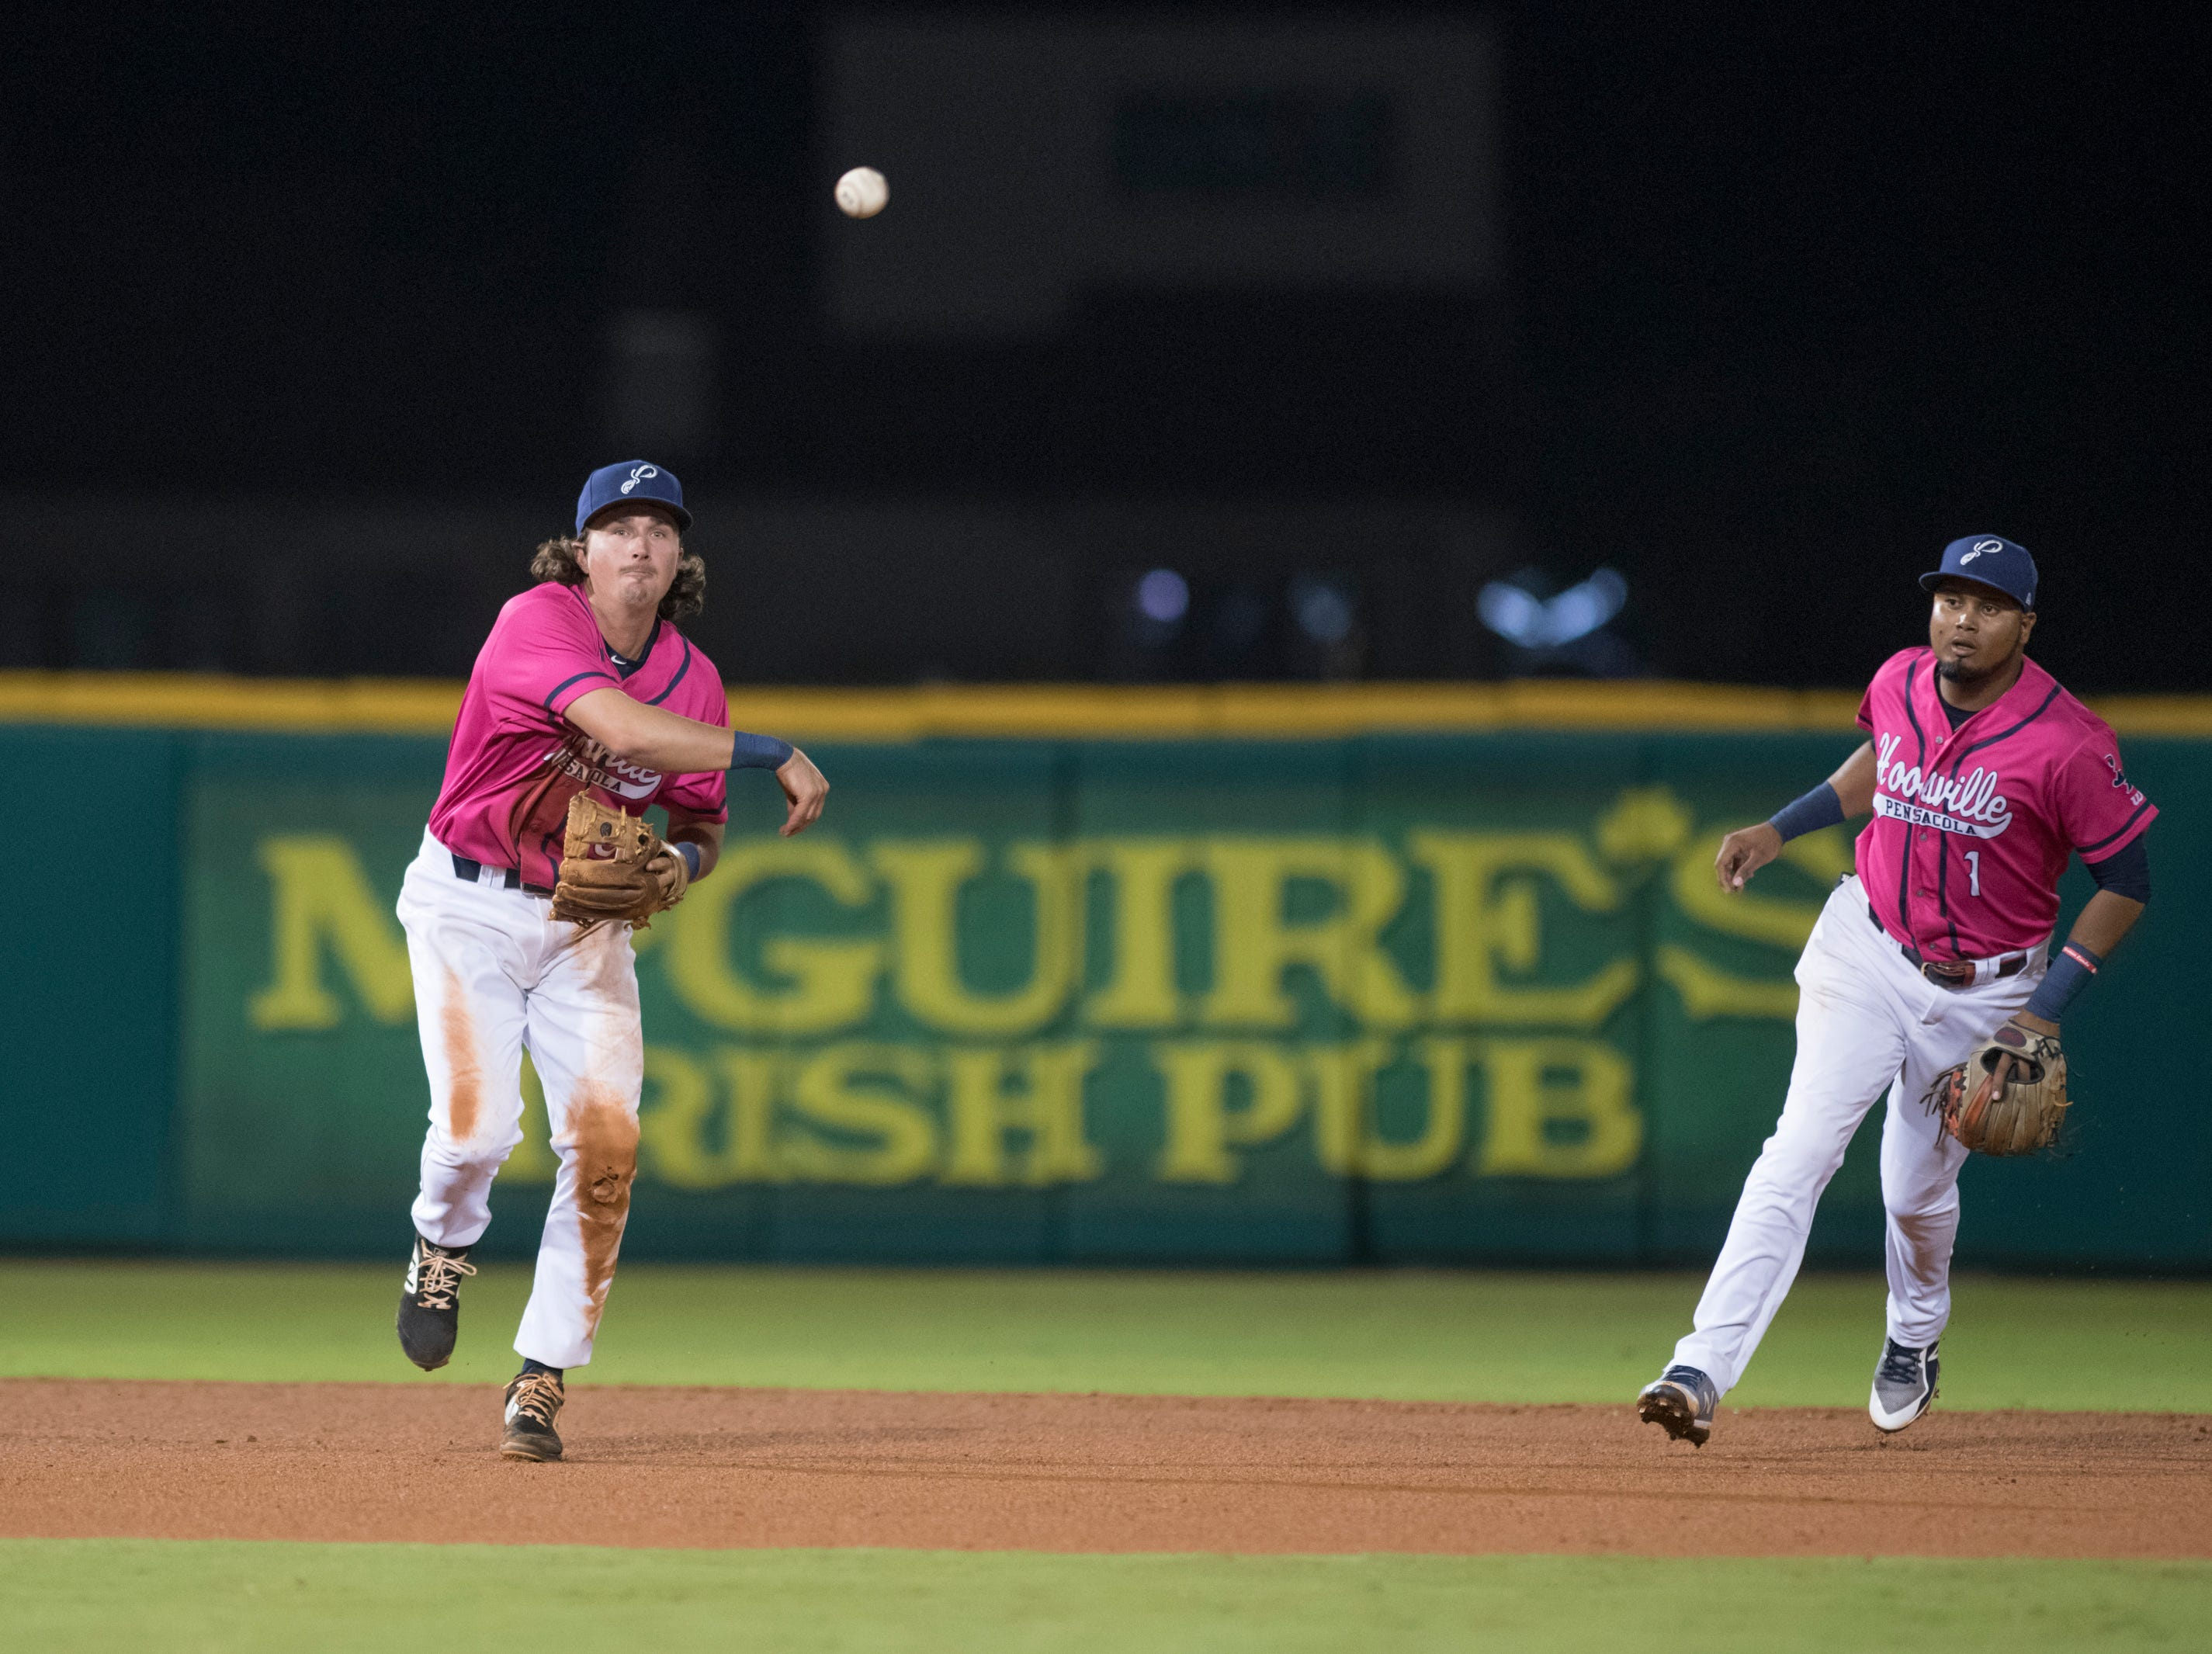 Shortstop Jordan Gore (10) throws to first for an out during the Jacksonville Jumbo Shrimp vs Pensacola Blue Wahoos baseball game in Pensacola on Friday, April 12, 2019.